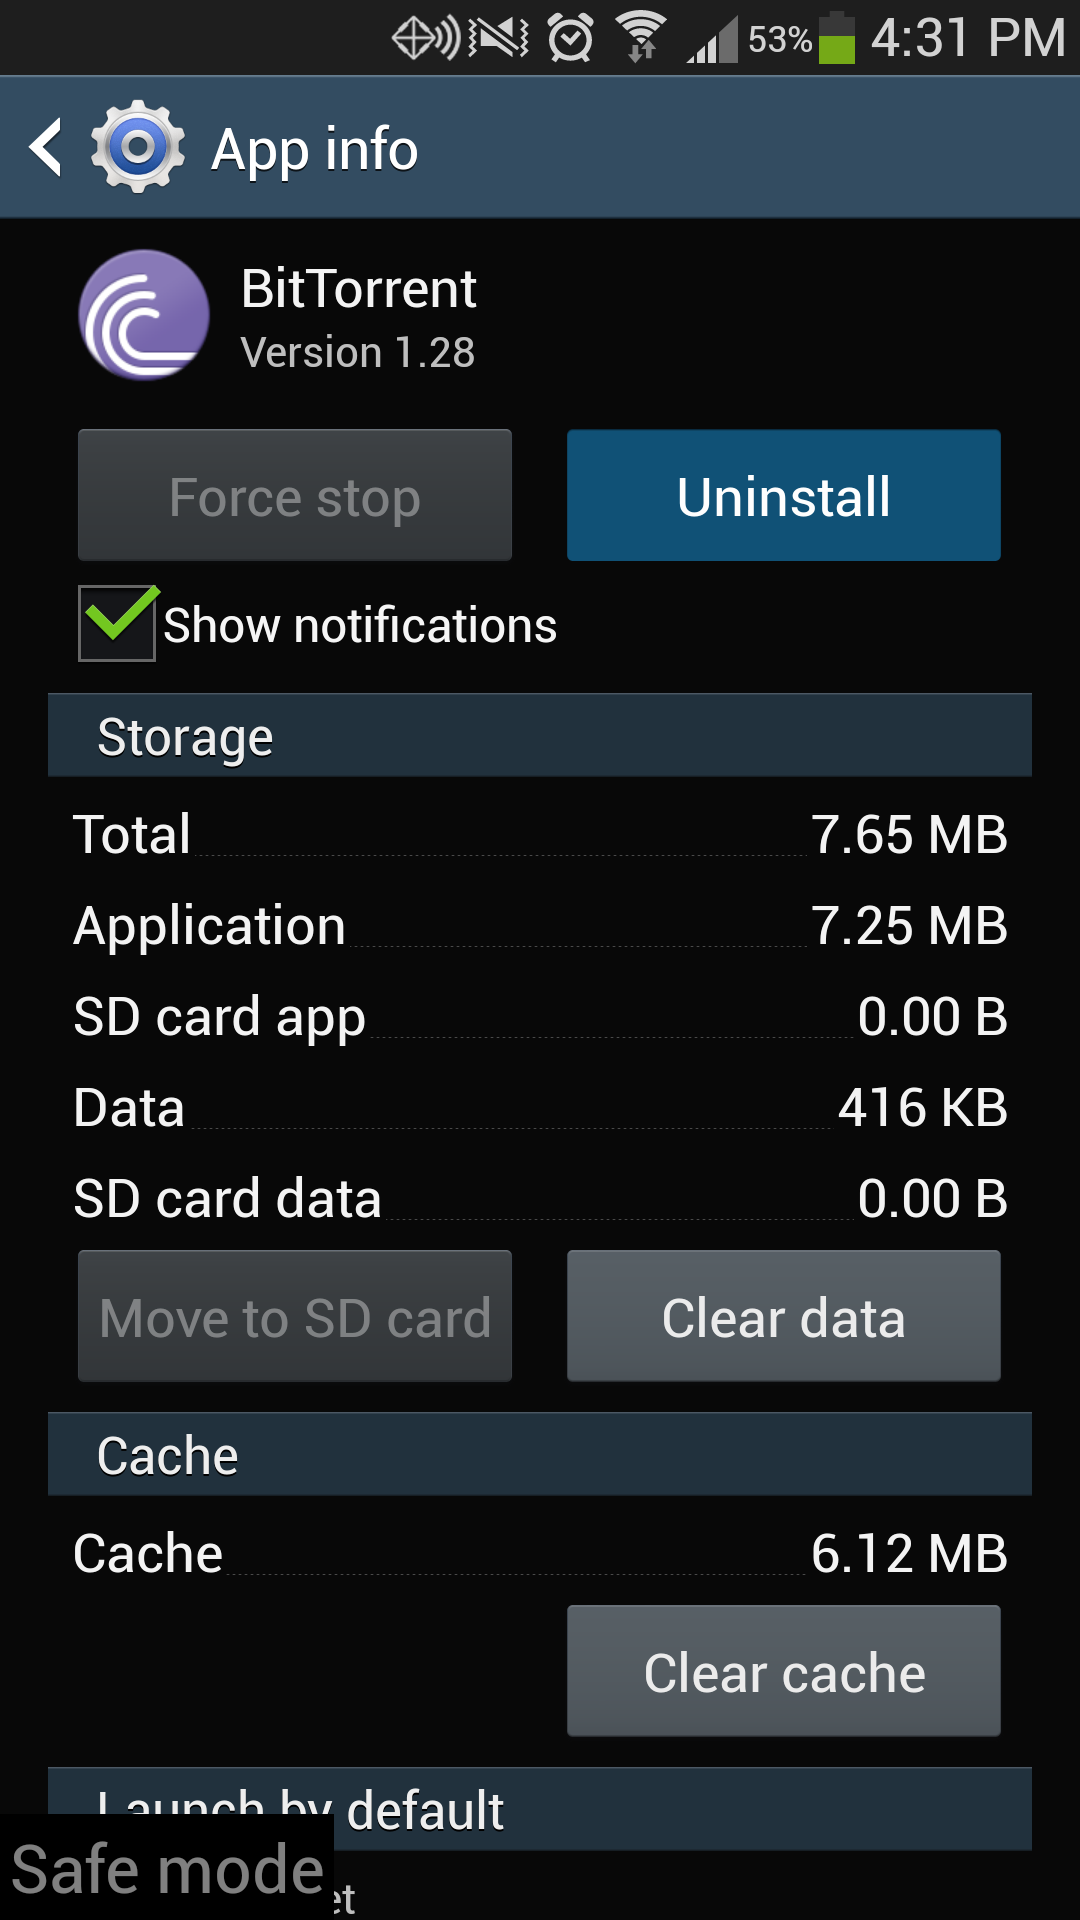 Uninstall Galaxy S4 App